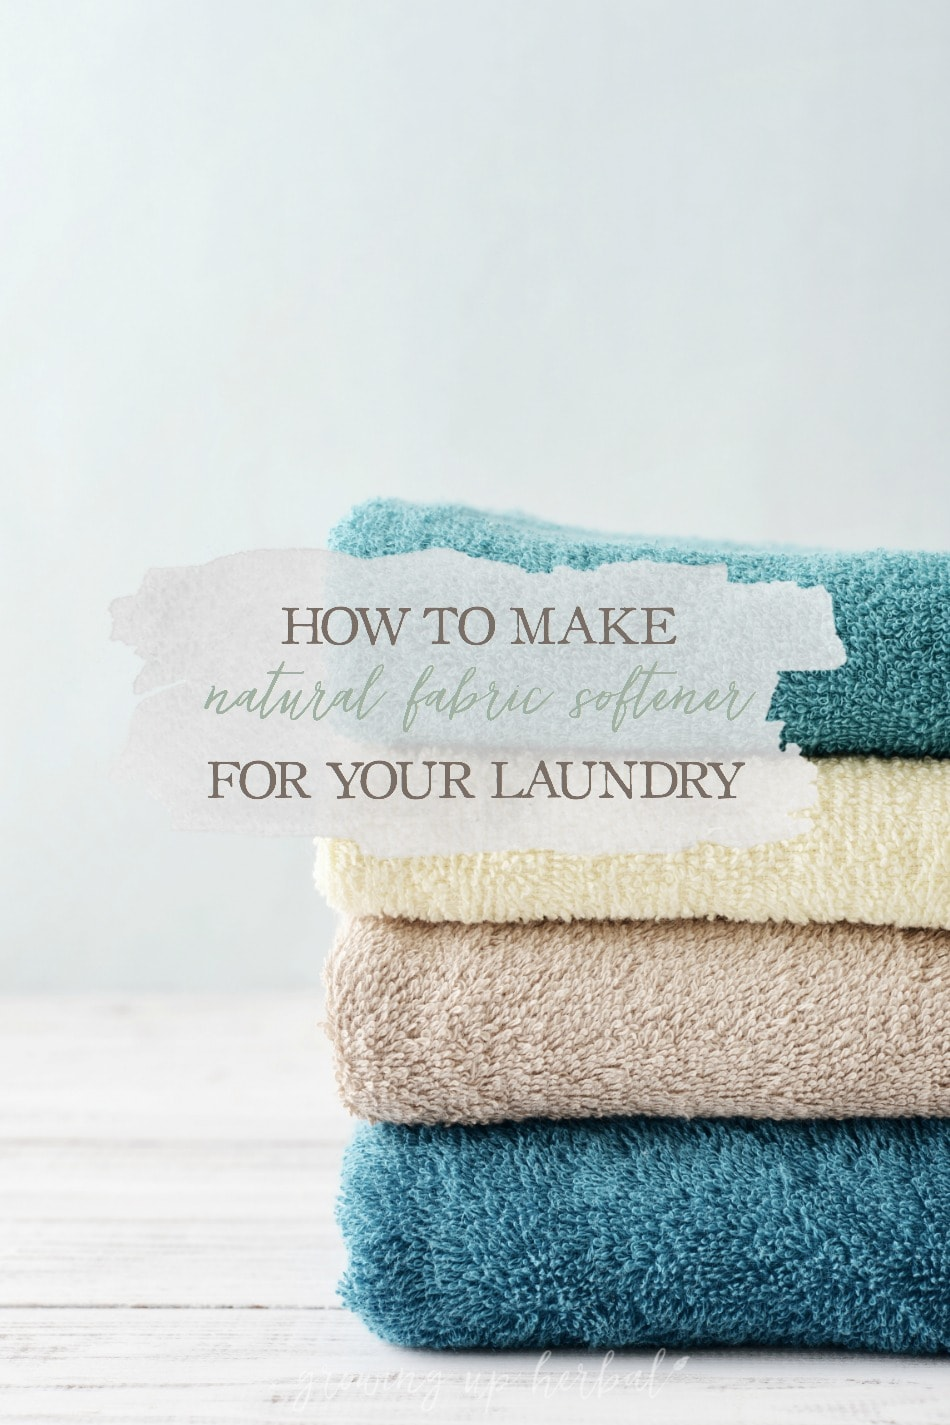 How To Make Natural Fabric Softener For Your Laundry | Growing Up Herbal | Cut out some harmful toxins by making your own homemade fabric softener!